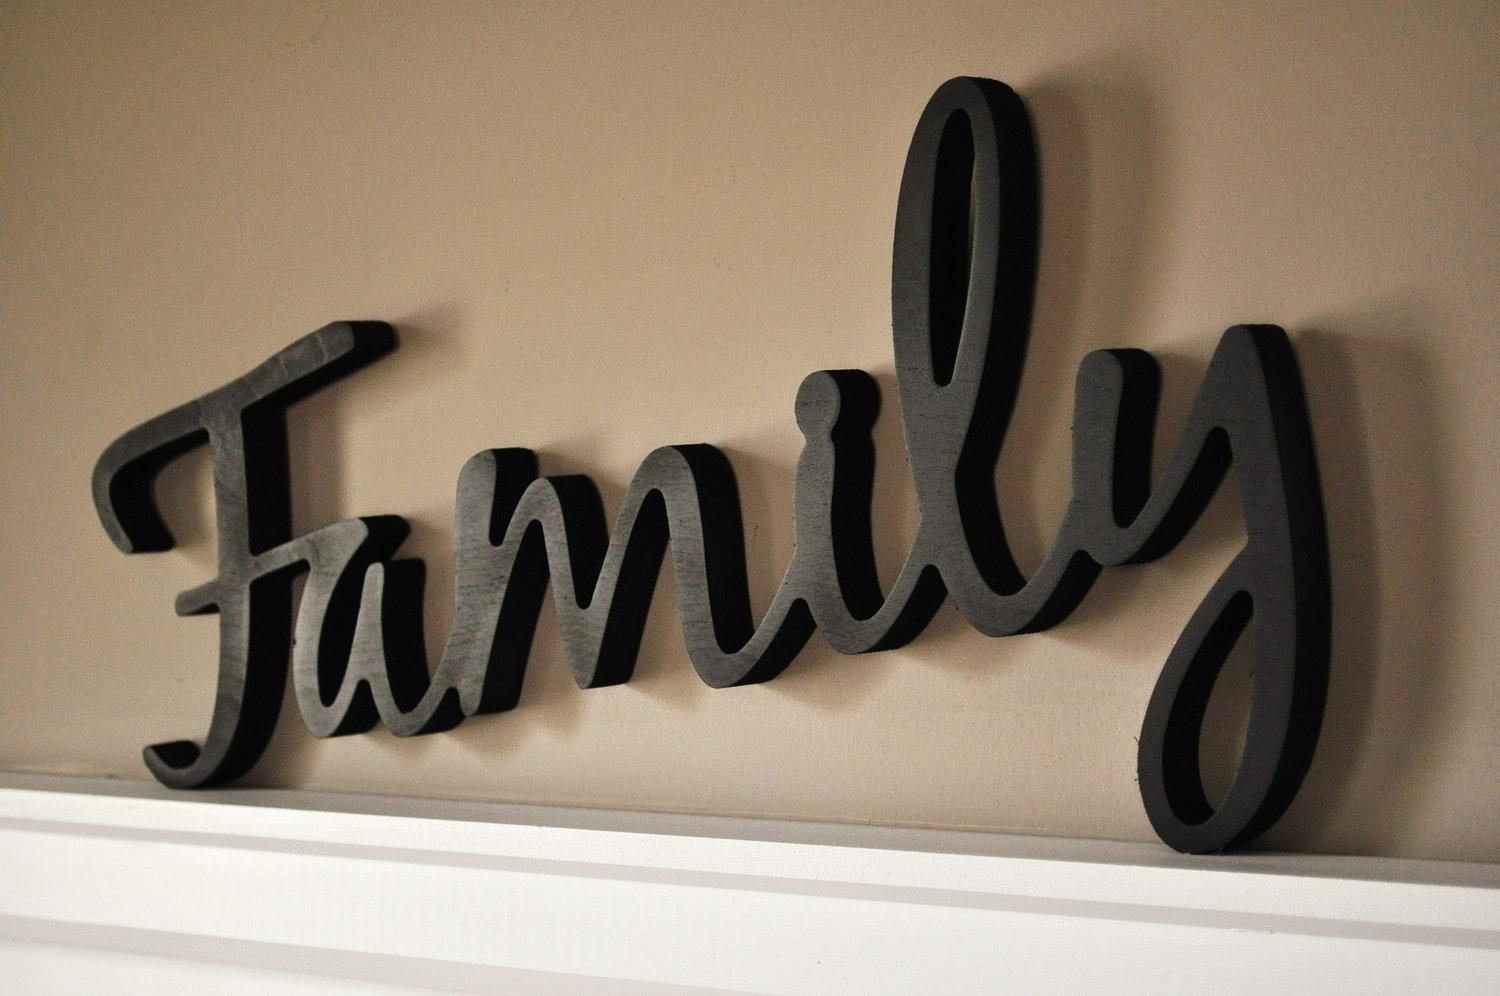 Wall Art Wooden Words | Wallartideas In Wooden Words Wall Art (View 1 of 20)